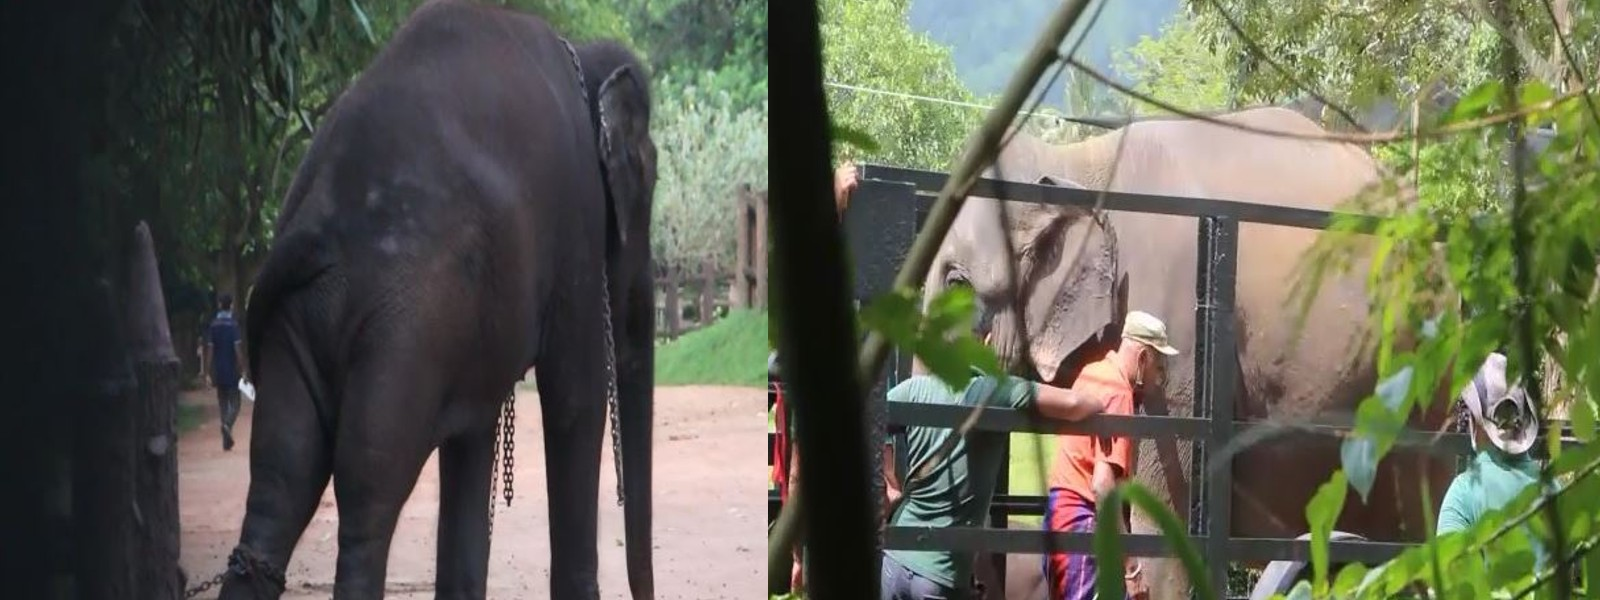 Another elephant held in Pinnawala released